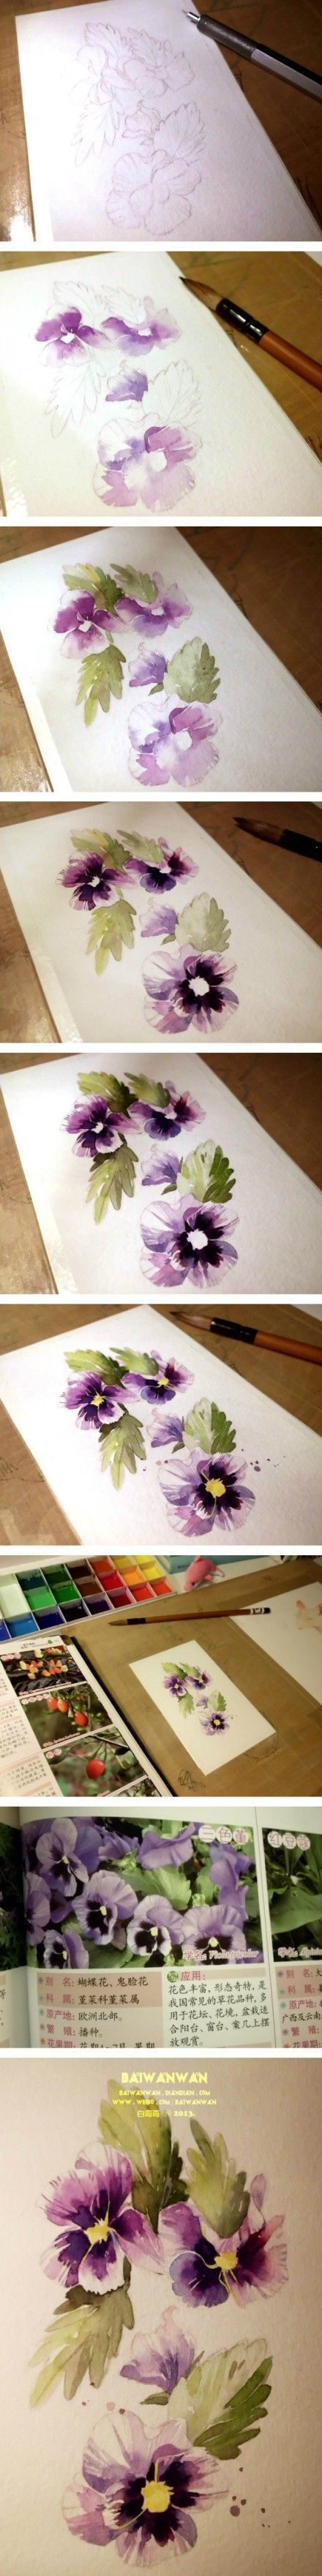 11816 best images about watercolor tutorials on pinterest for How to paint watercolor flowers step by step